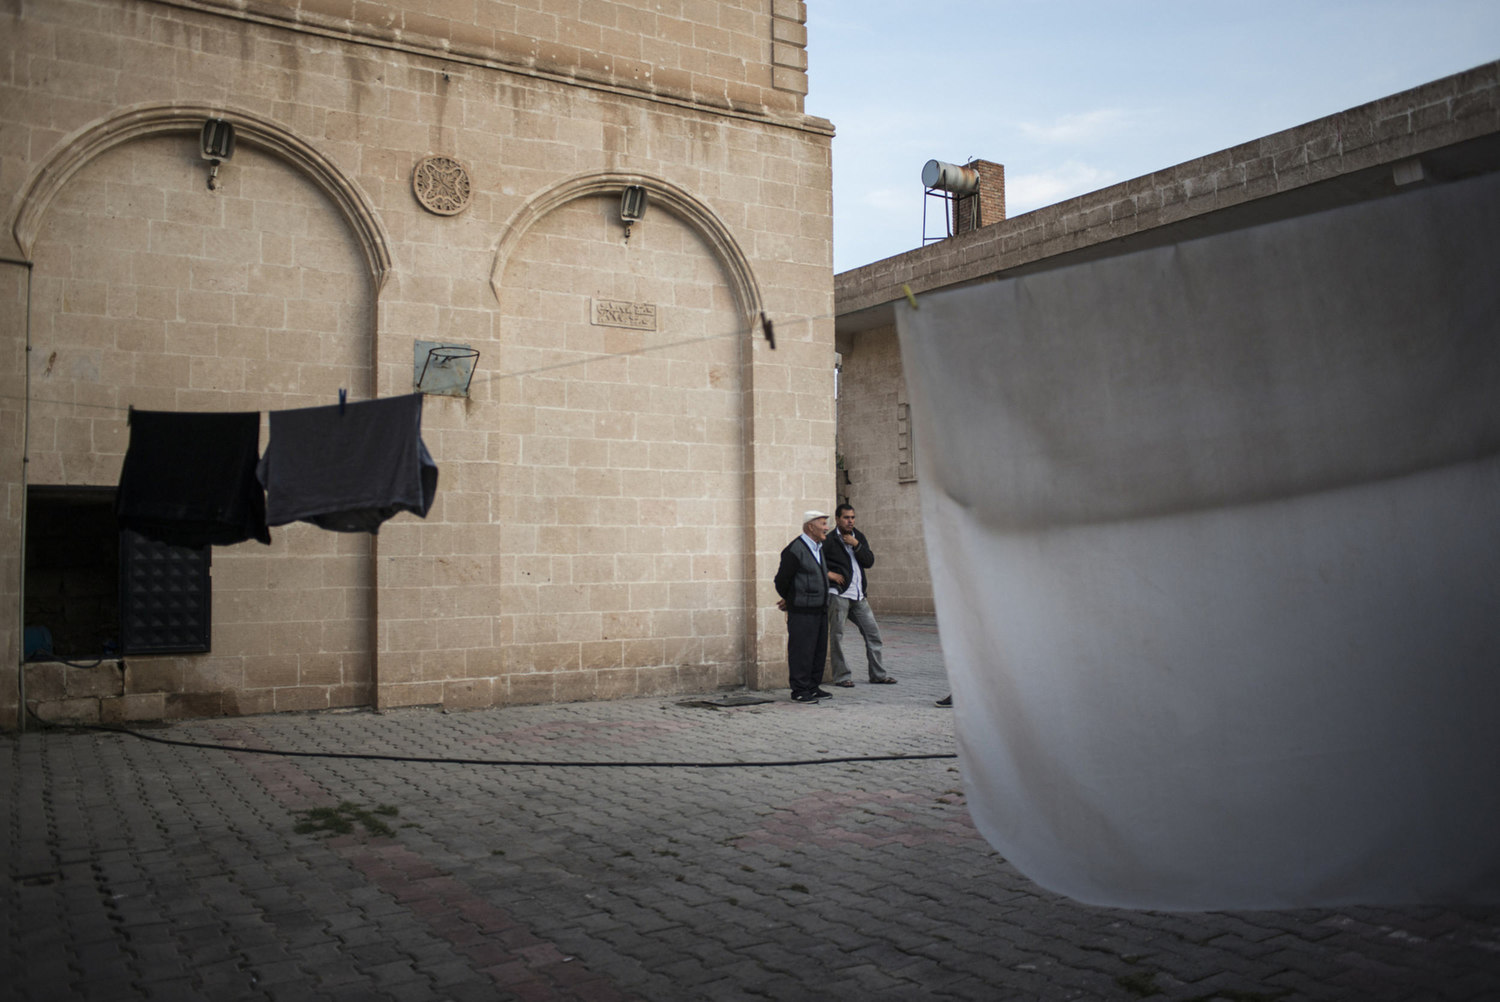 In the courtyard of the cultural center, Syrian refugees talk while laundry is drying on October 30th, 2014 in Midyat, Turkey.